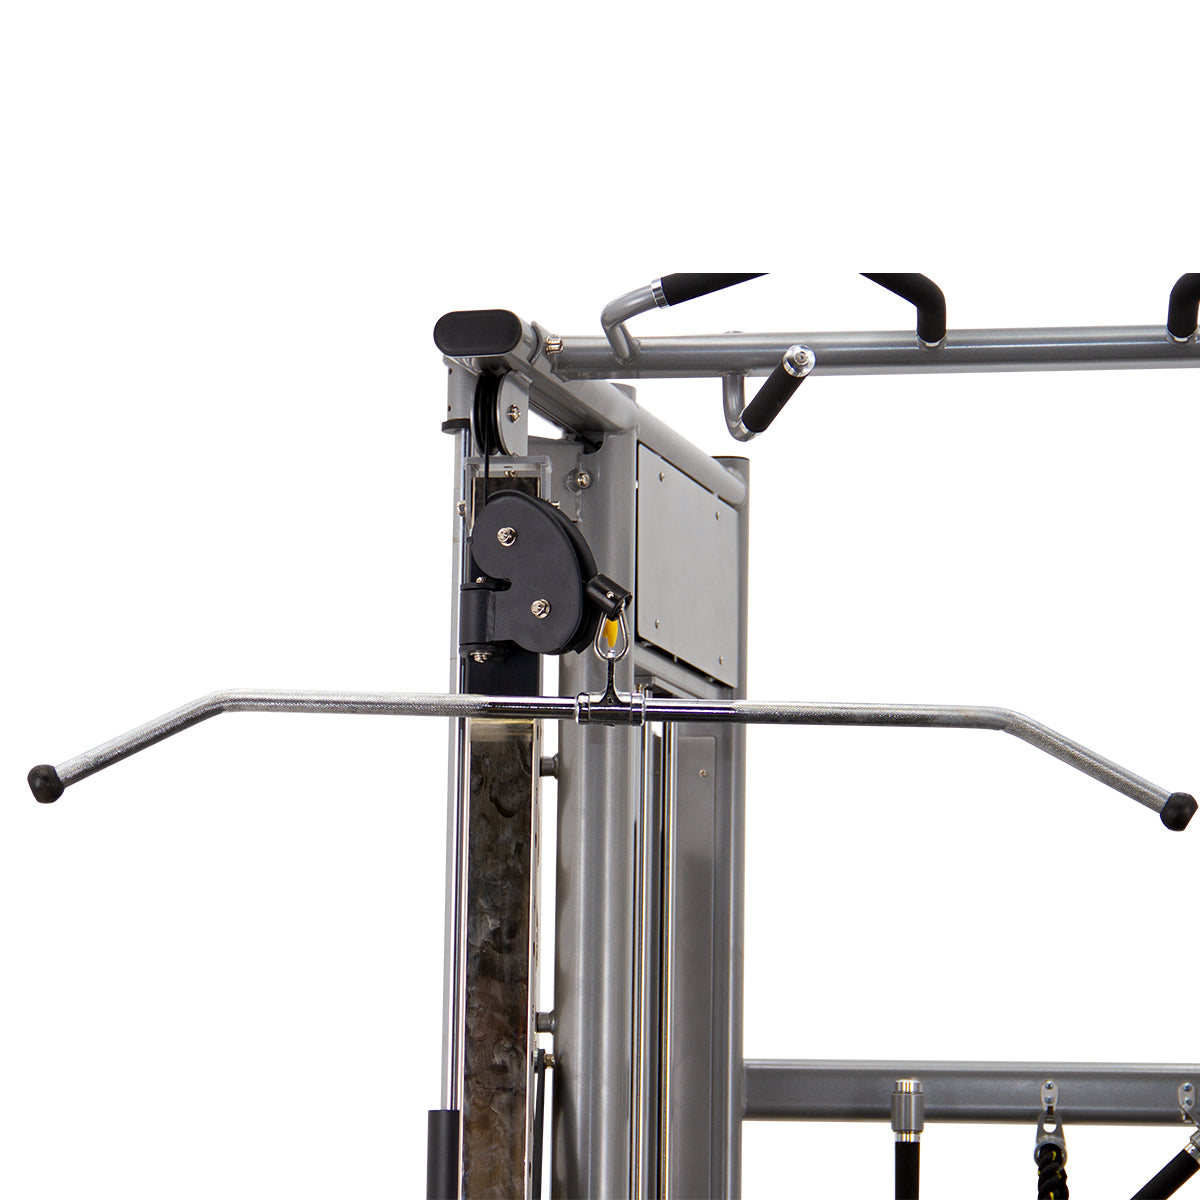 CGS Universal Trainer weights and cable machine all in one training system